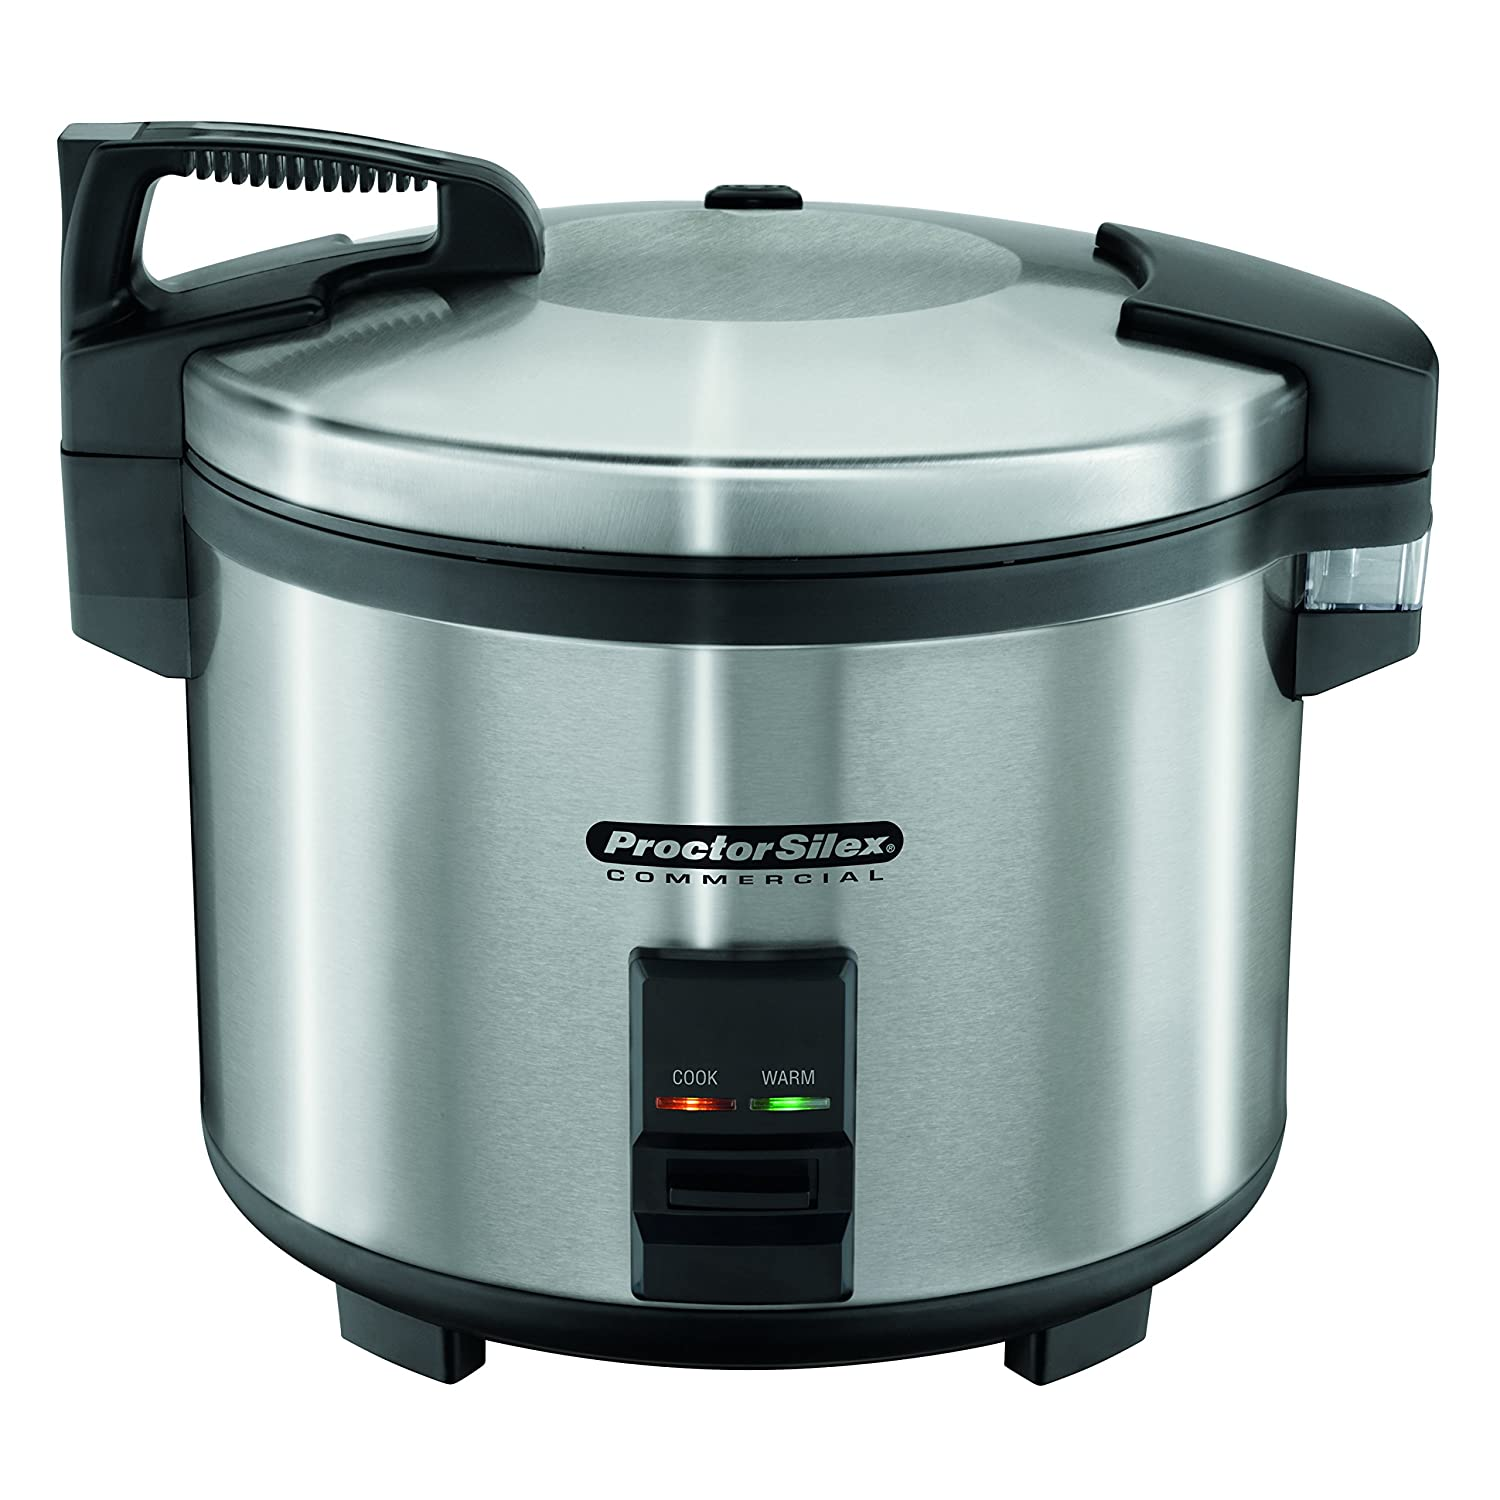 Amazon.com: Proctor Silex Commercial 37560R Rice Cooker/Warmer, 60 ...